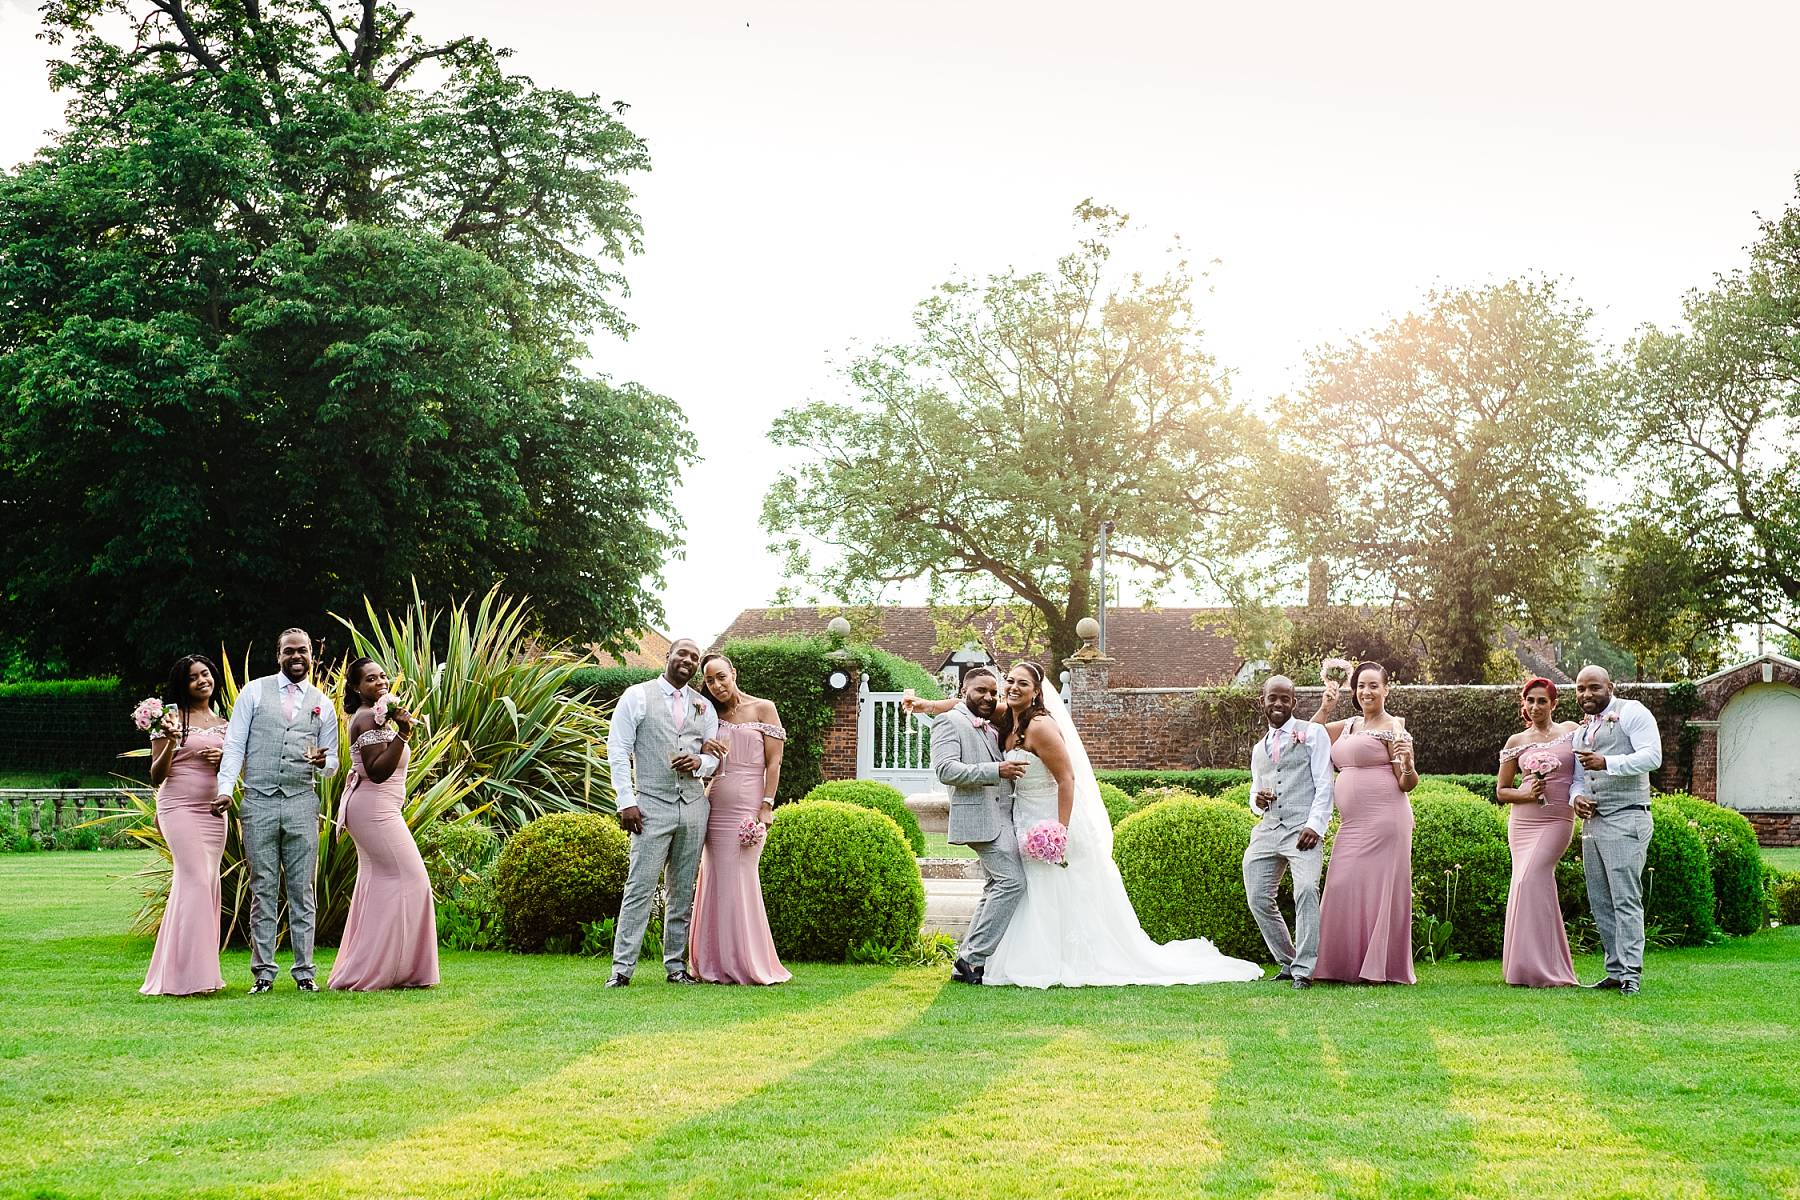 Bridal and Groom's wedding party at Parklands Quendon Hall